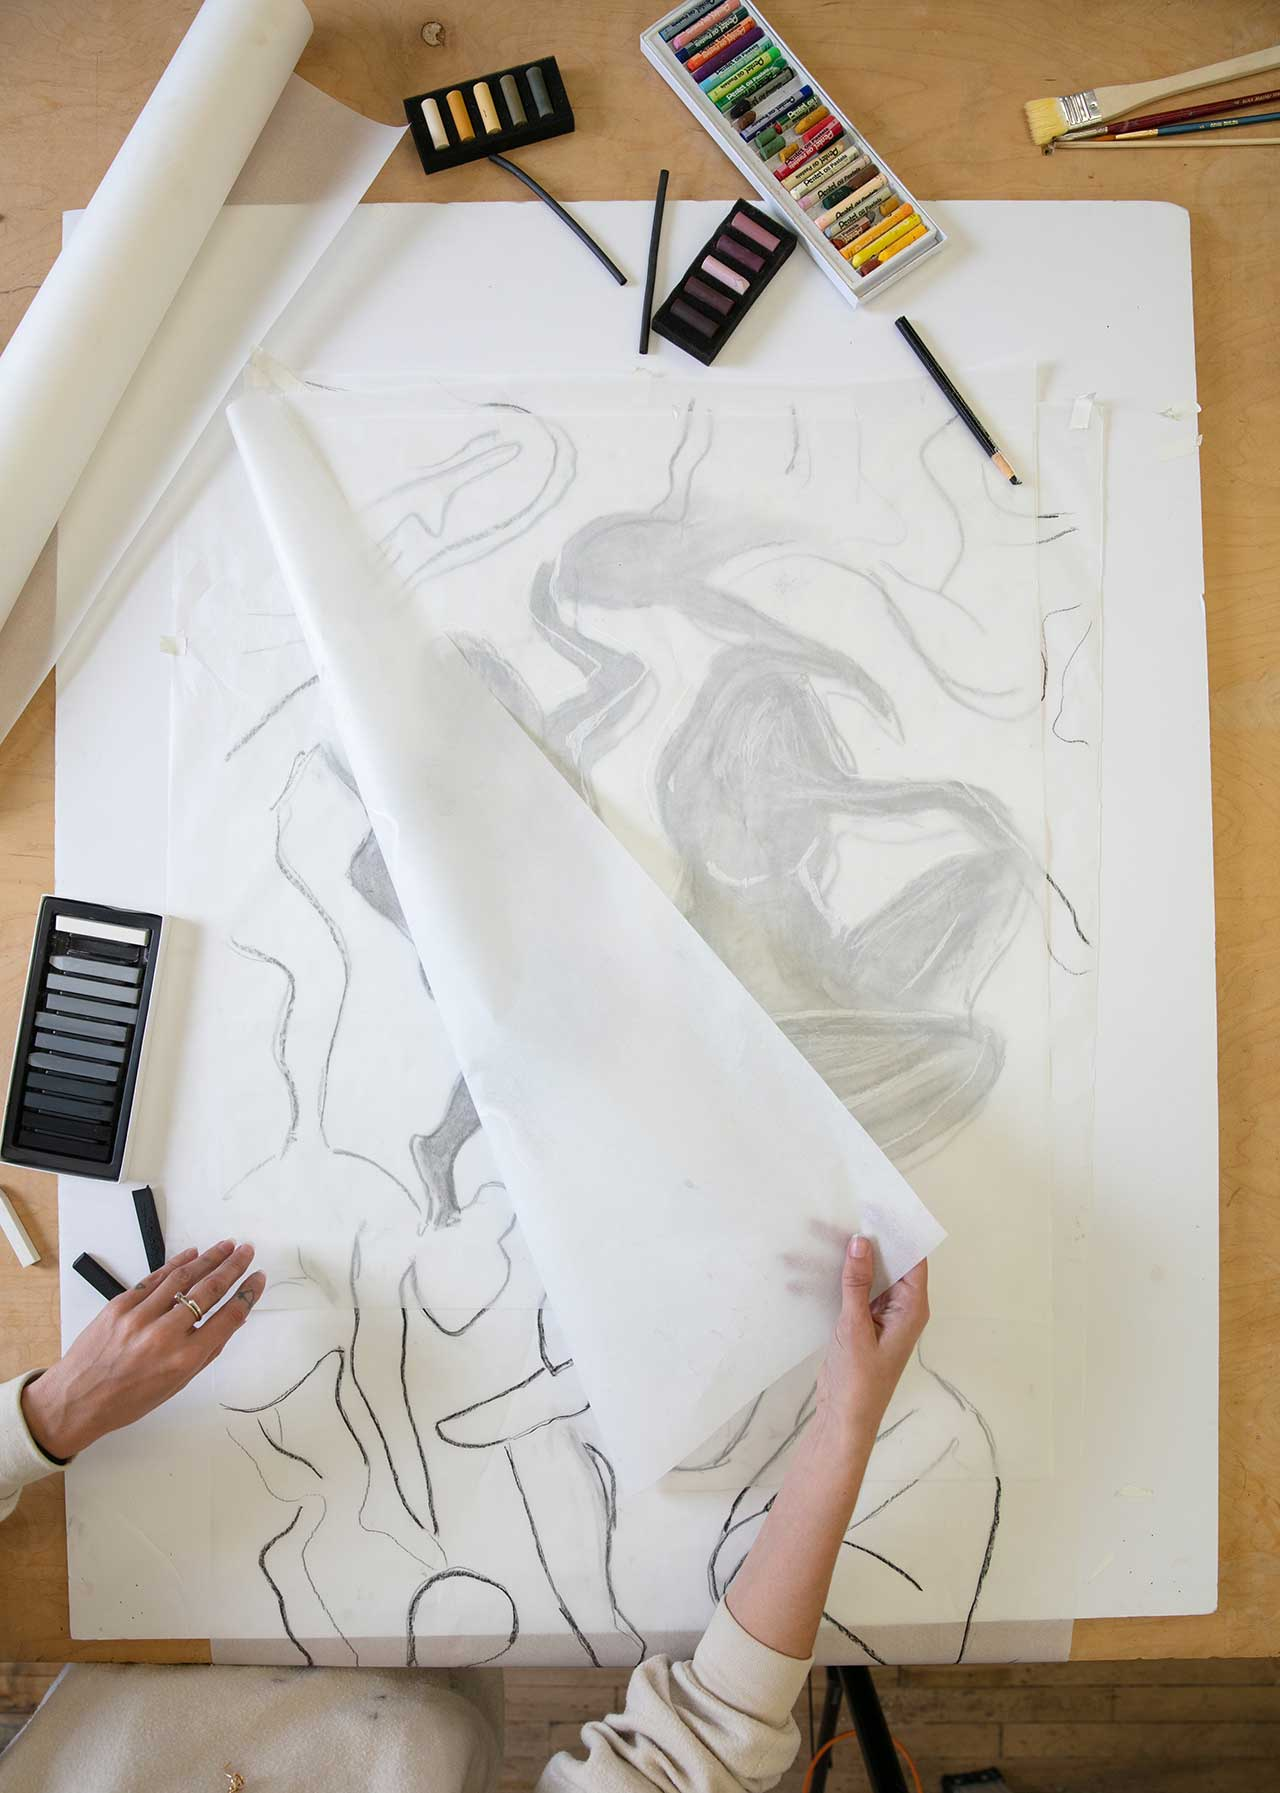 artist inspecting abstract drawing through trace paper